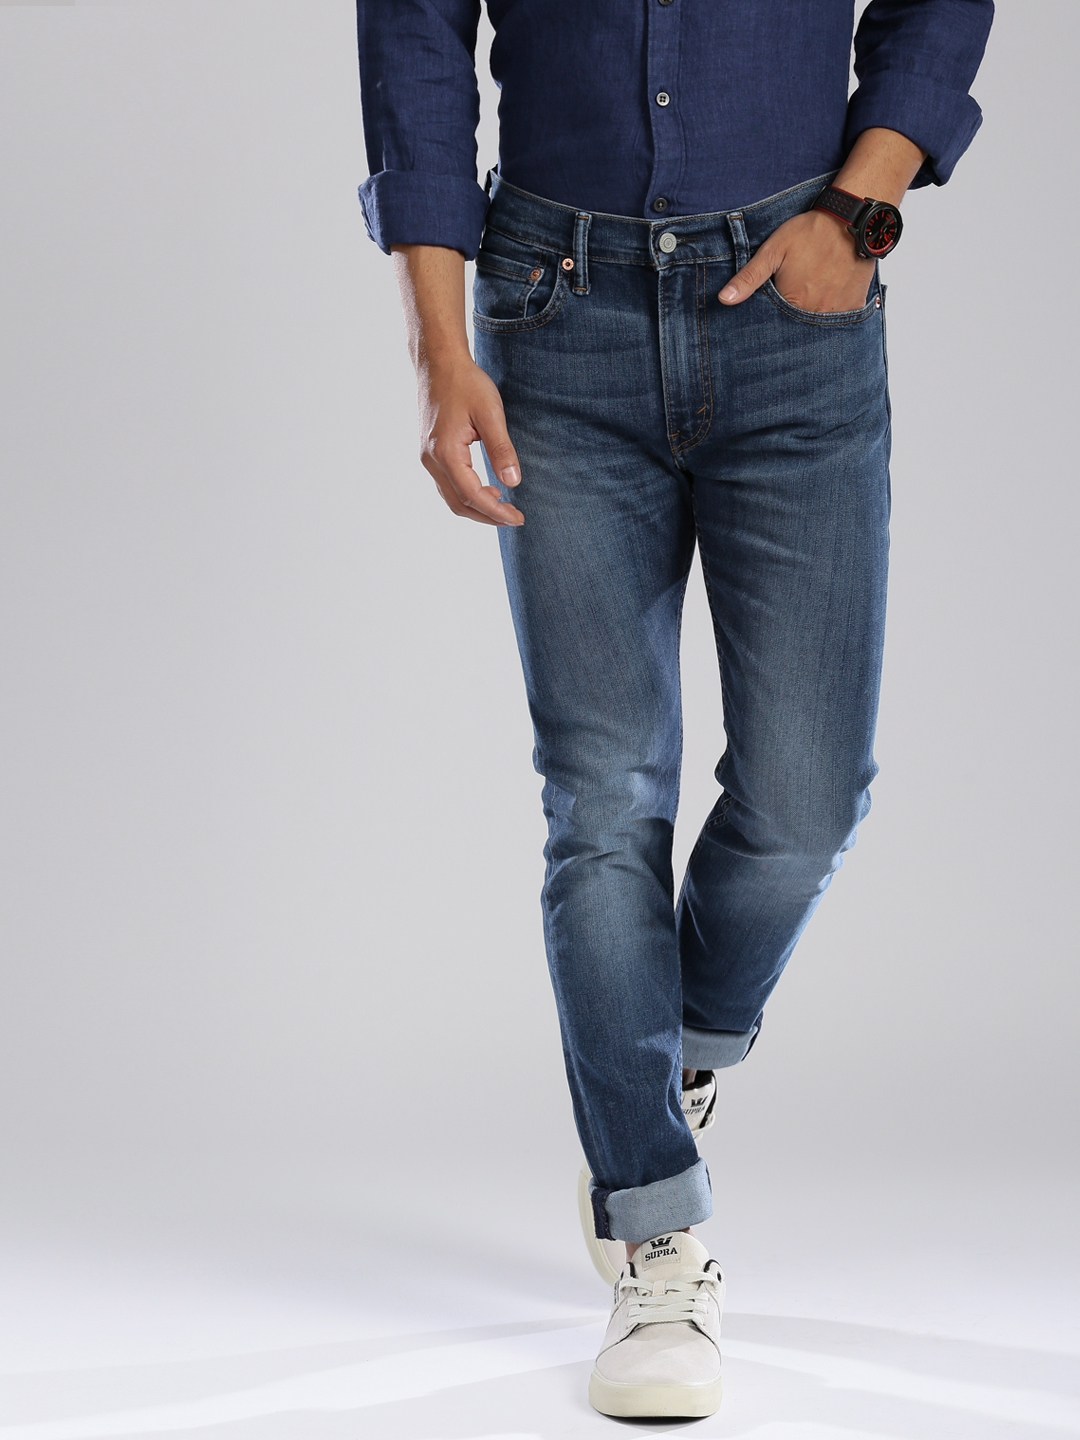 8b382e3ed4b Buy Levi's Blue 519 Extreme Skinny Fit Stretchable Jeans - Jeans for Men  1424082 | Myntra